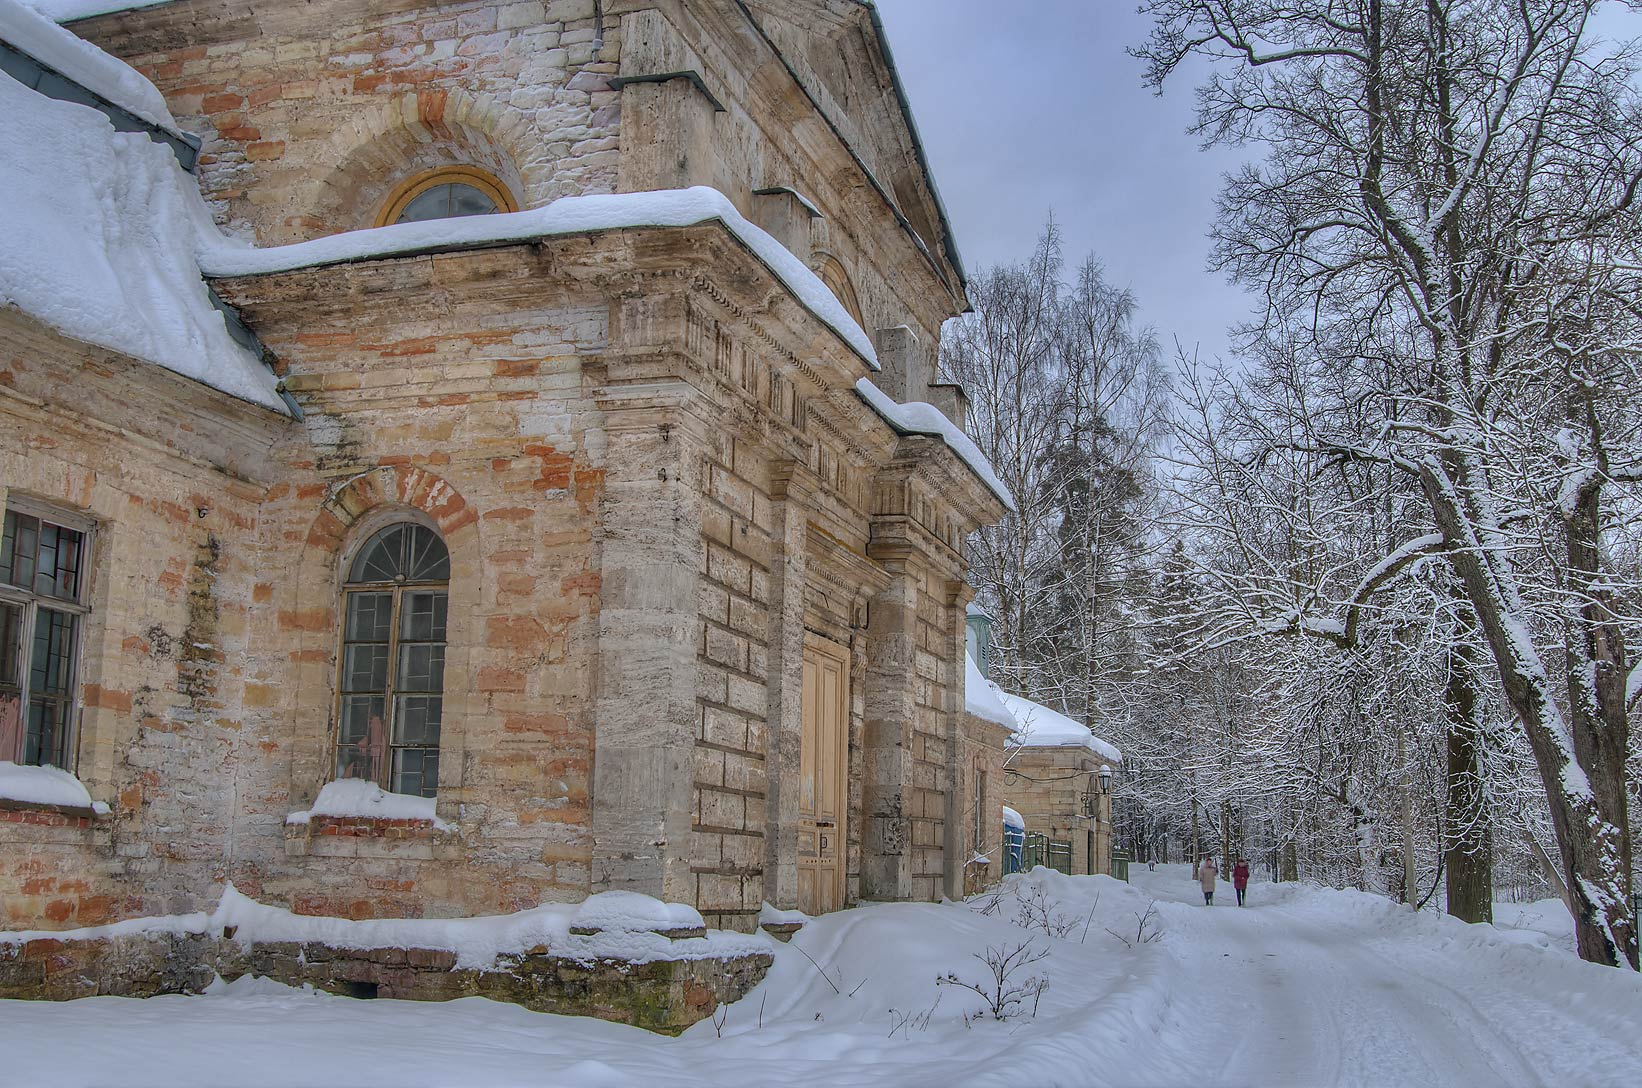 Entrance of the Farm in the park of Gatchina, suburb of St.Petersburg, Russia